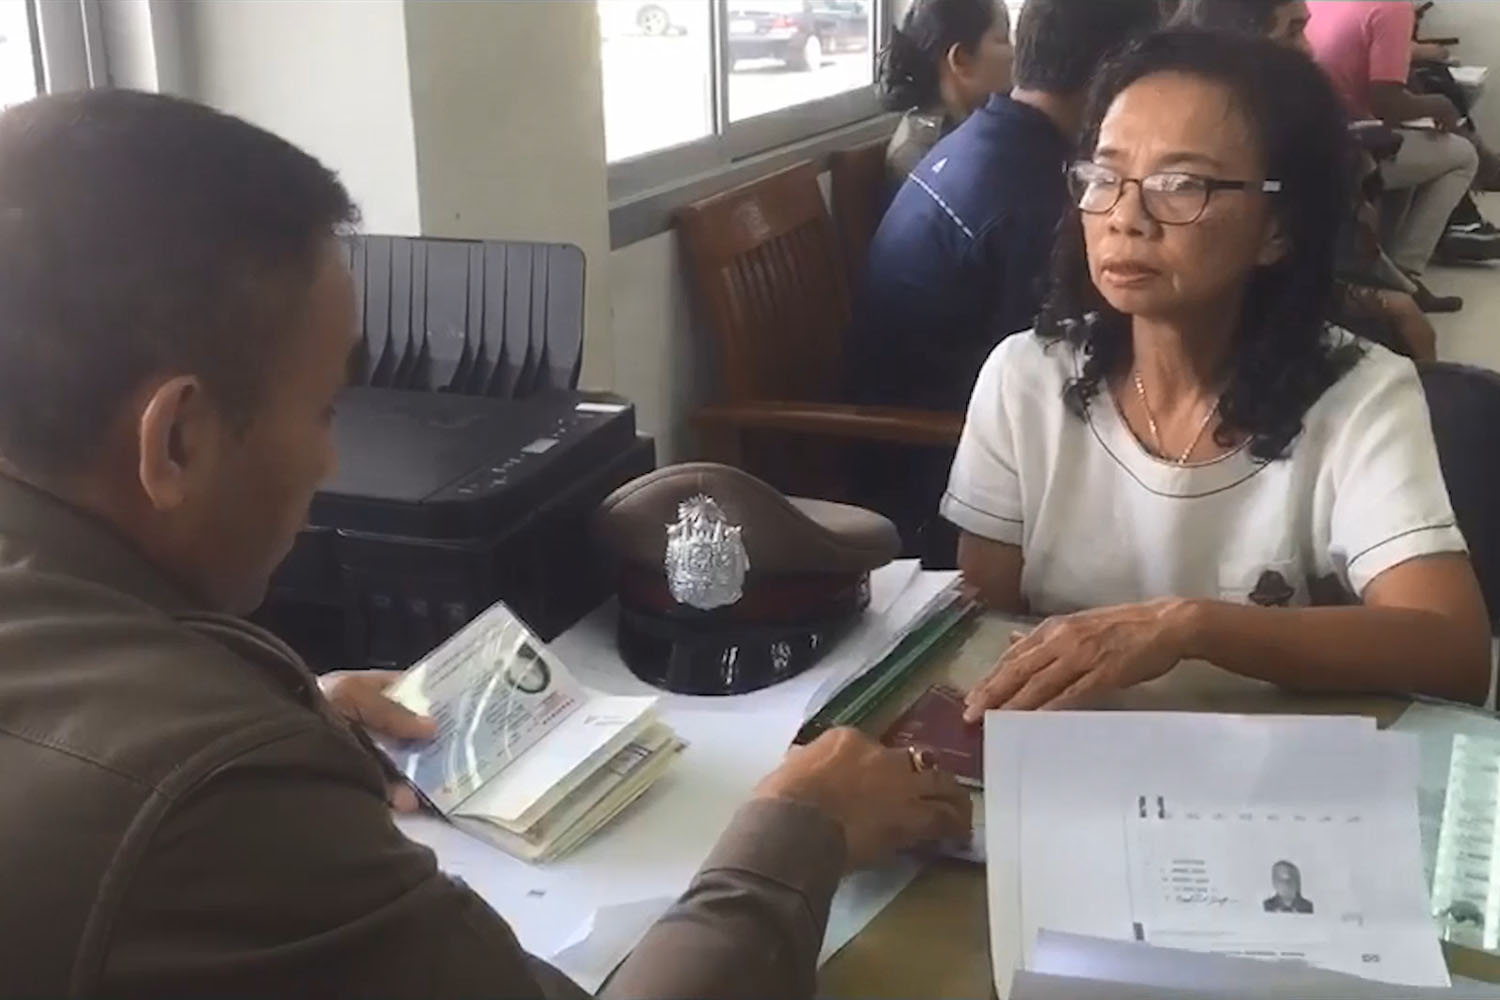 Amphorn Maksomboon files a missing person report at Hat Yai police station on Monday, saying she was worried about her missing Swedish husband.(Photo by Assawin Pakkawan)